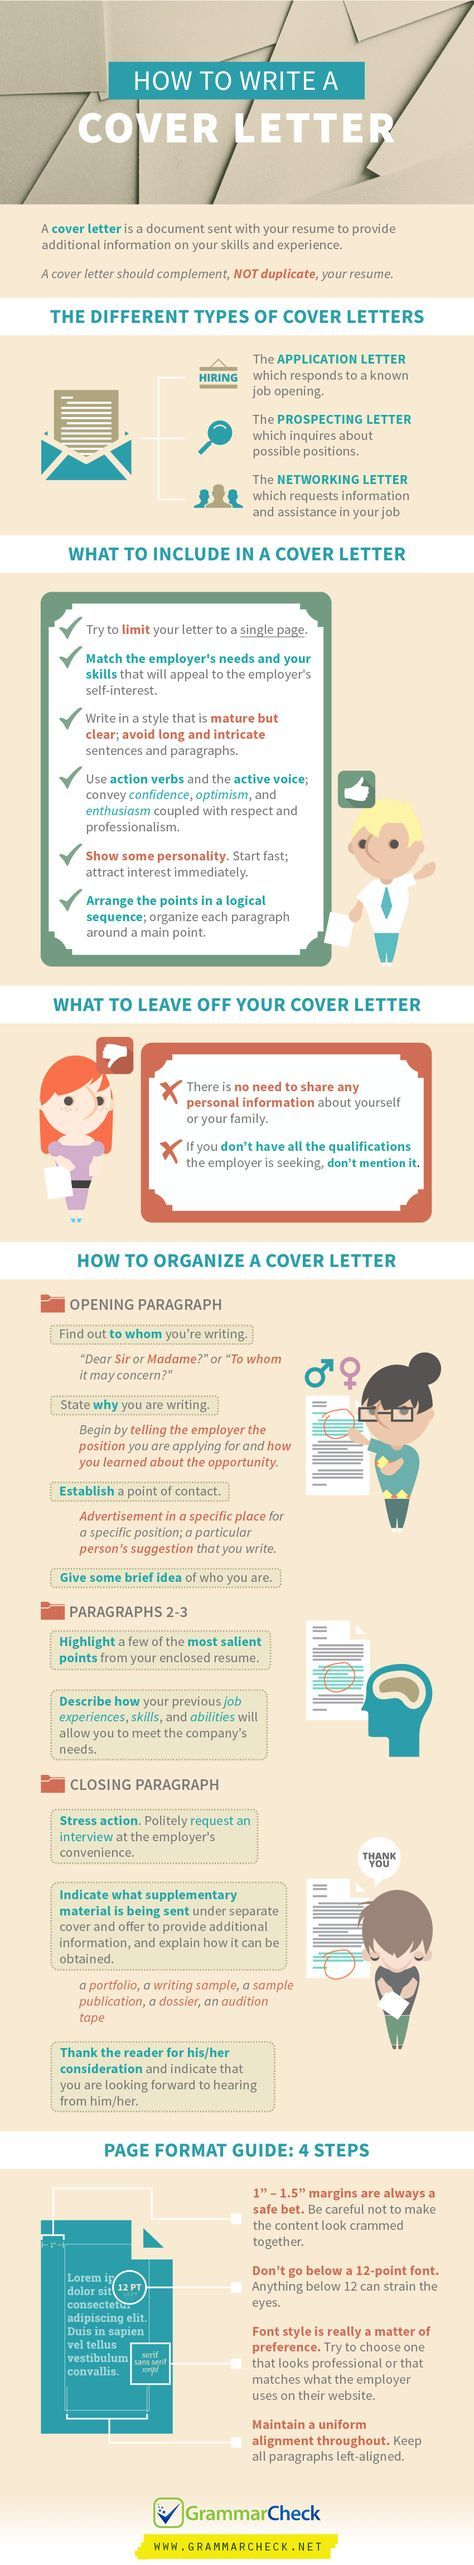 Free education for All: How to an Excellent Cover-letter... Source: www.g...